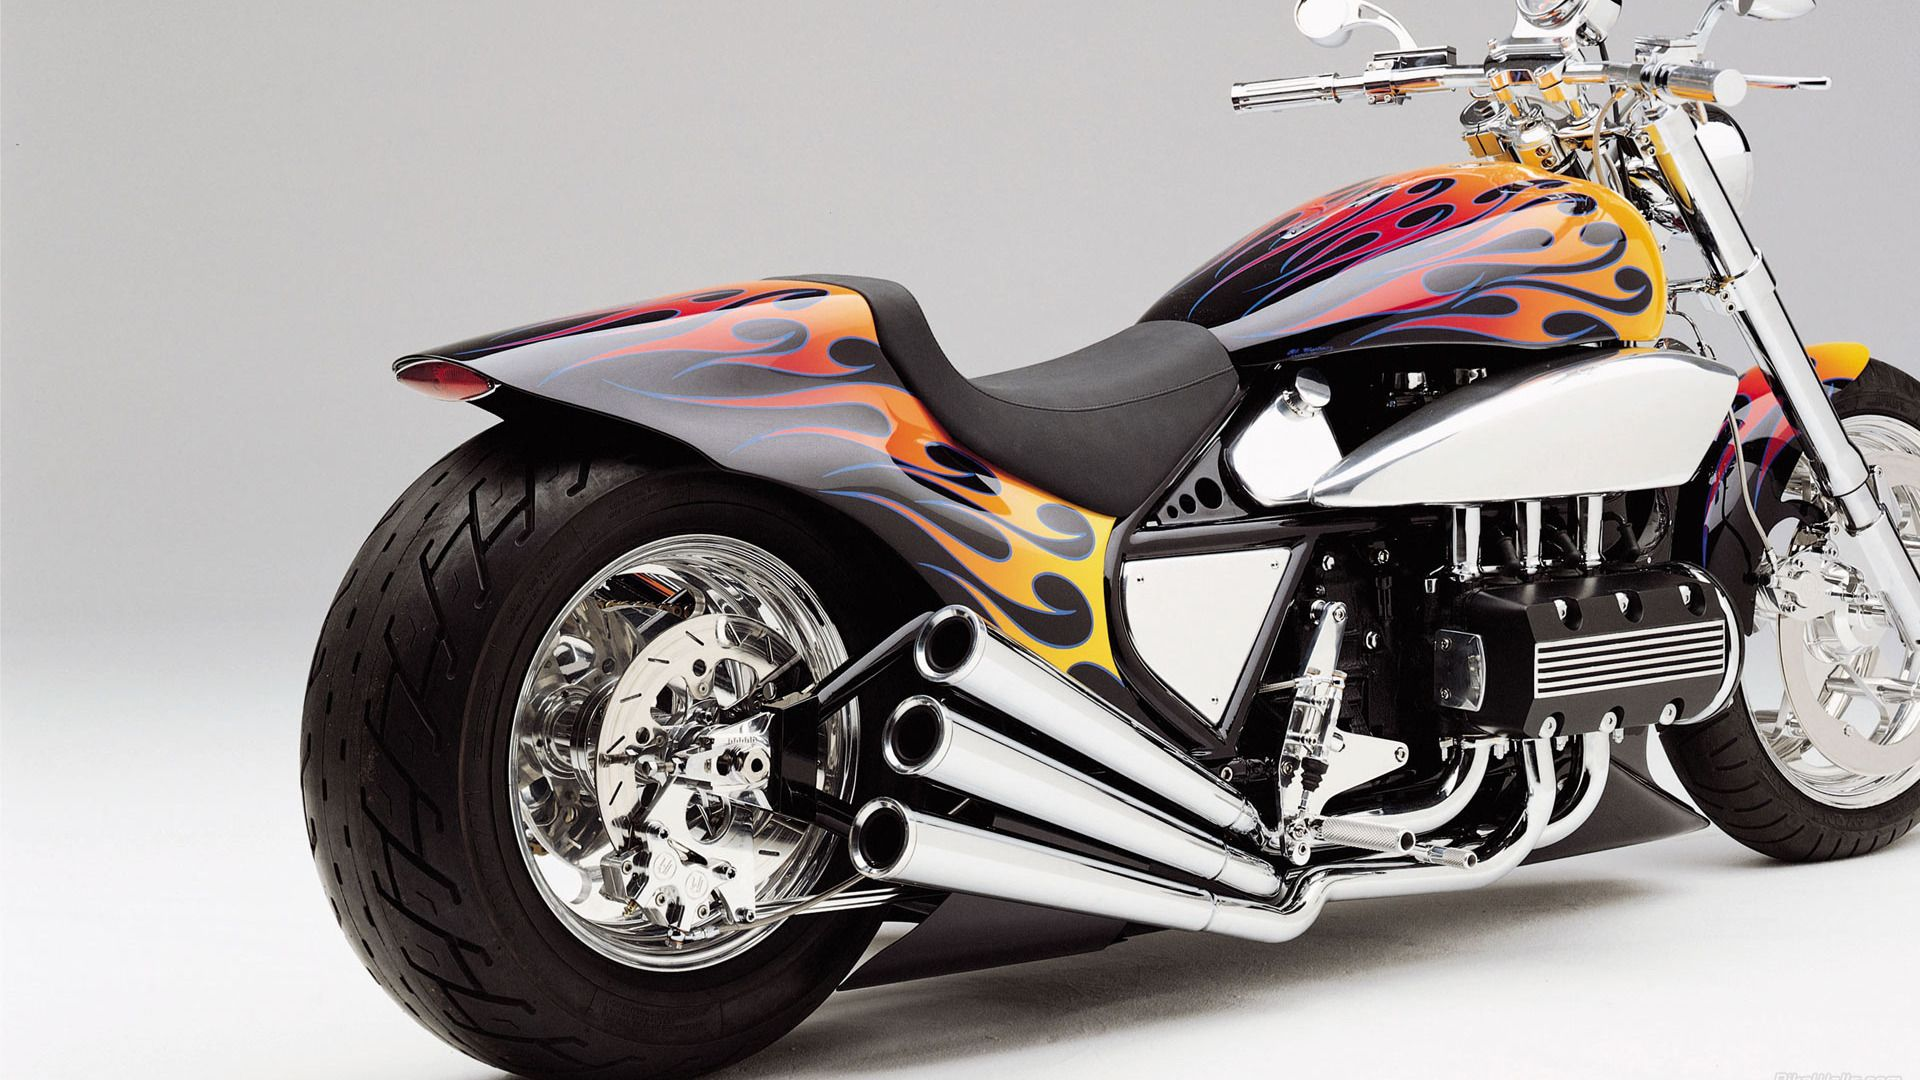 big bikes images dowload | hd walpaper (hd-wallpapersdownload